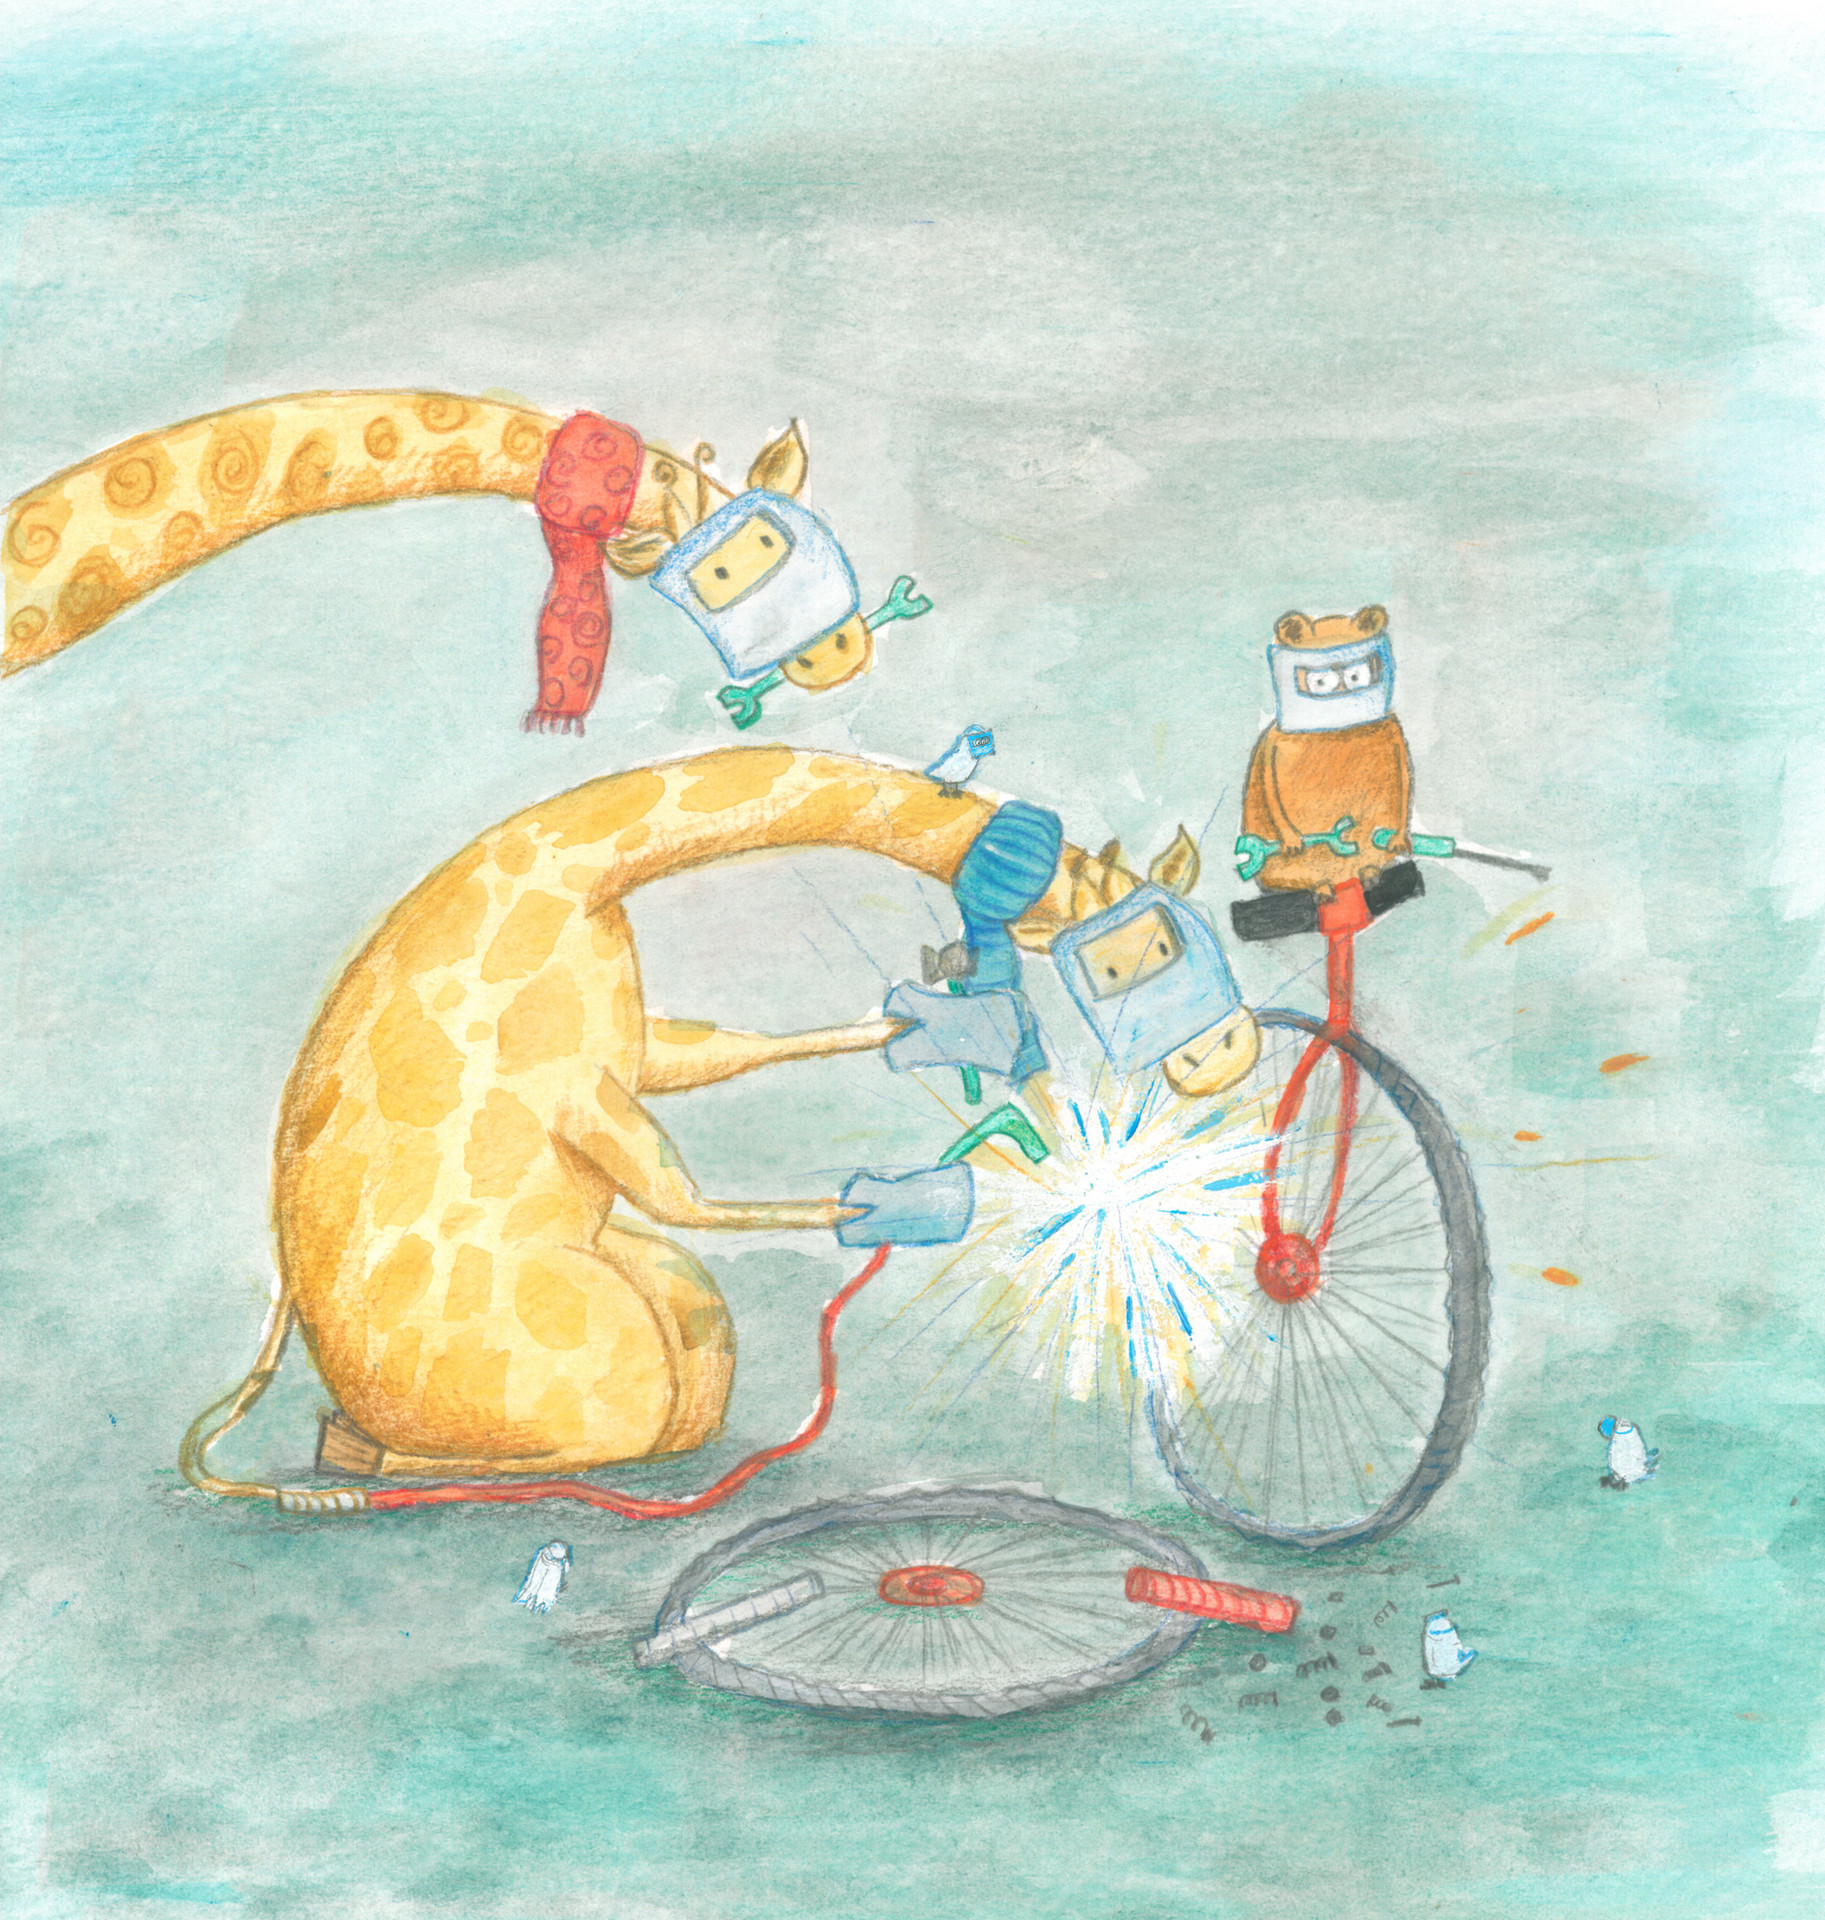 Who knew giraffe's could fix bikes?